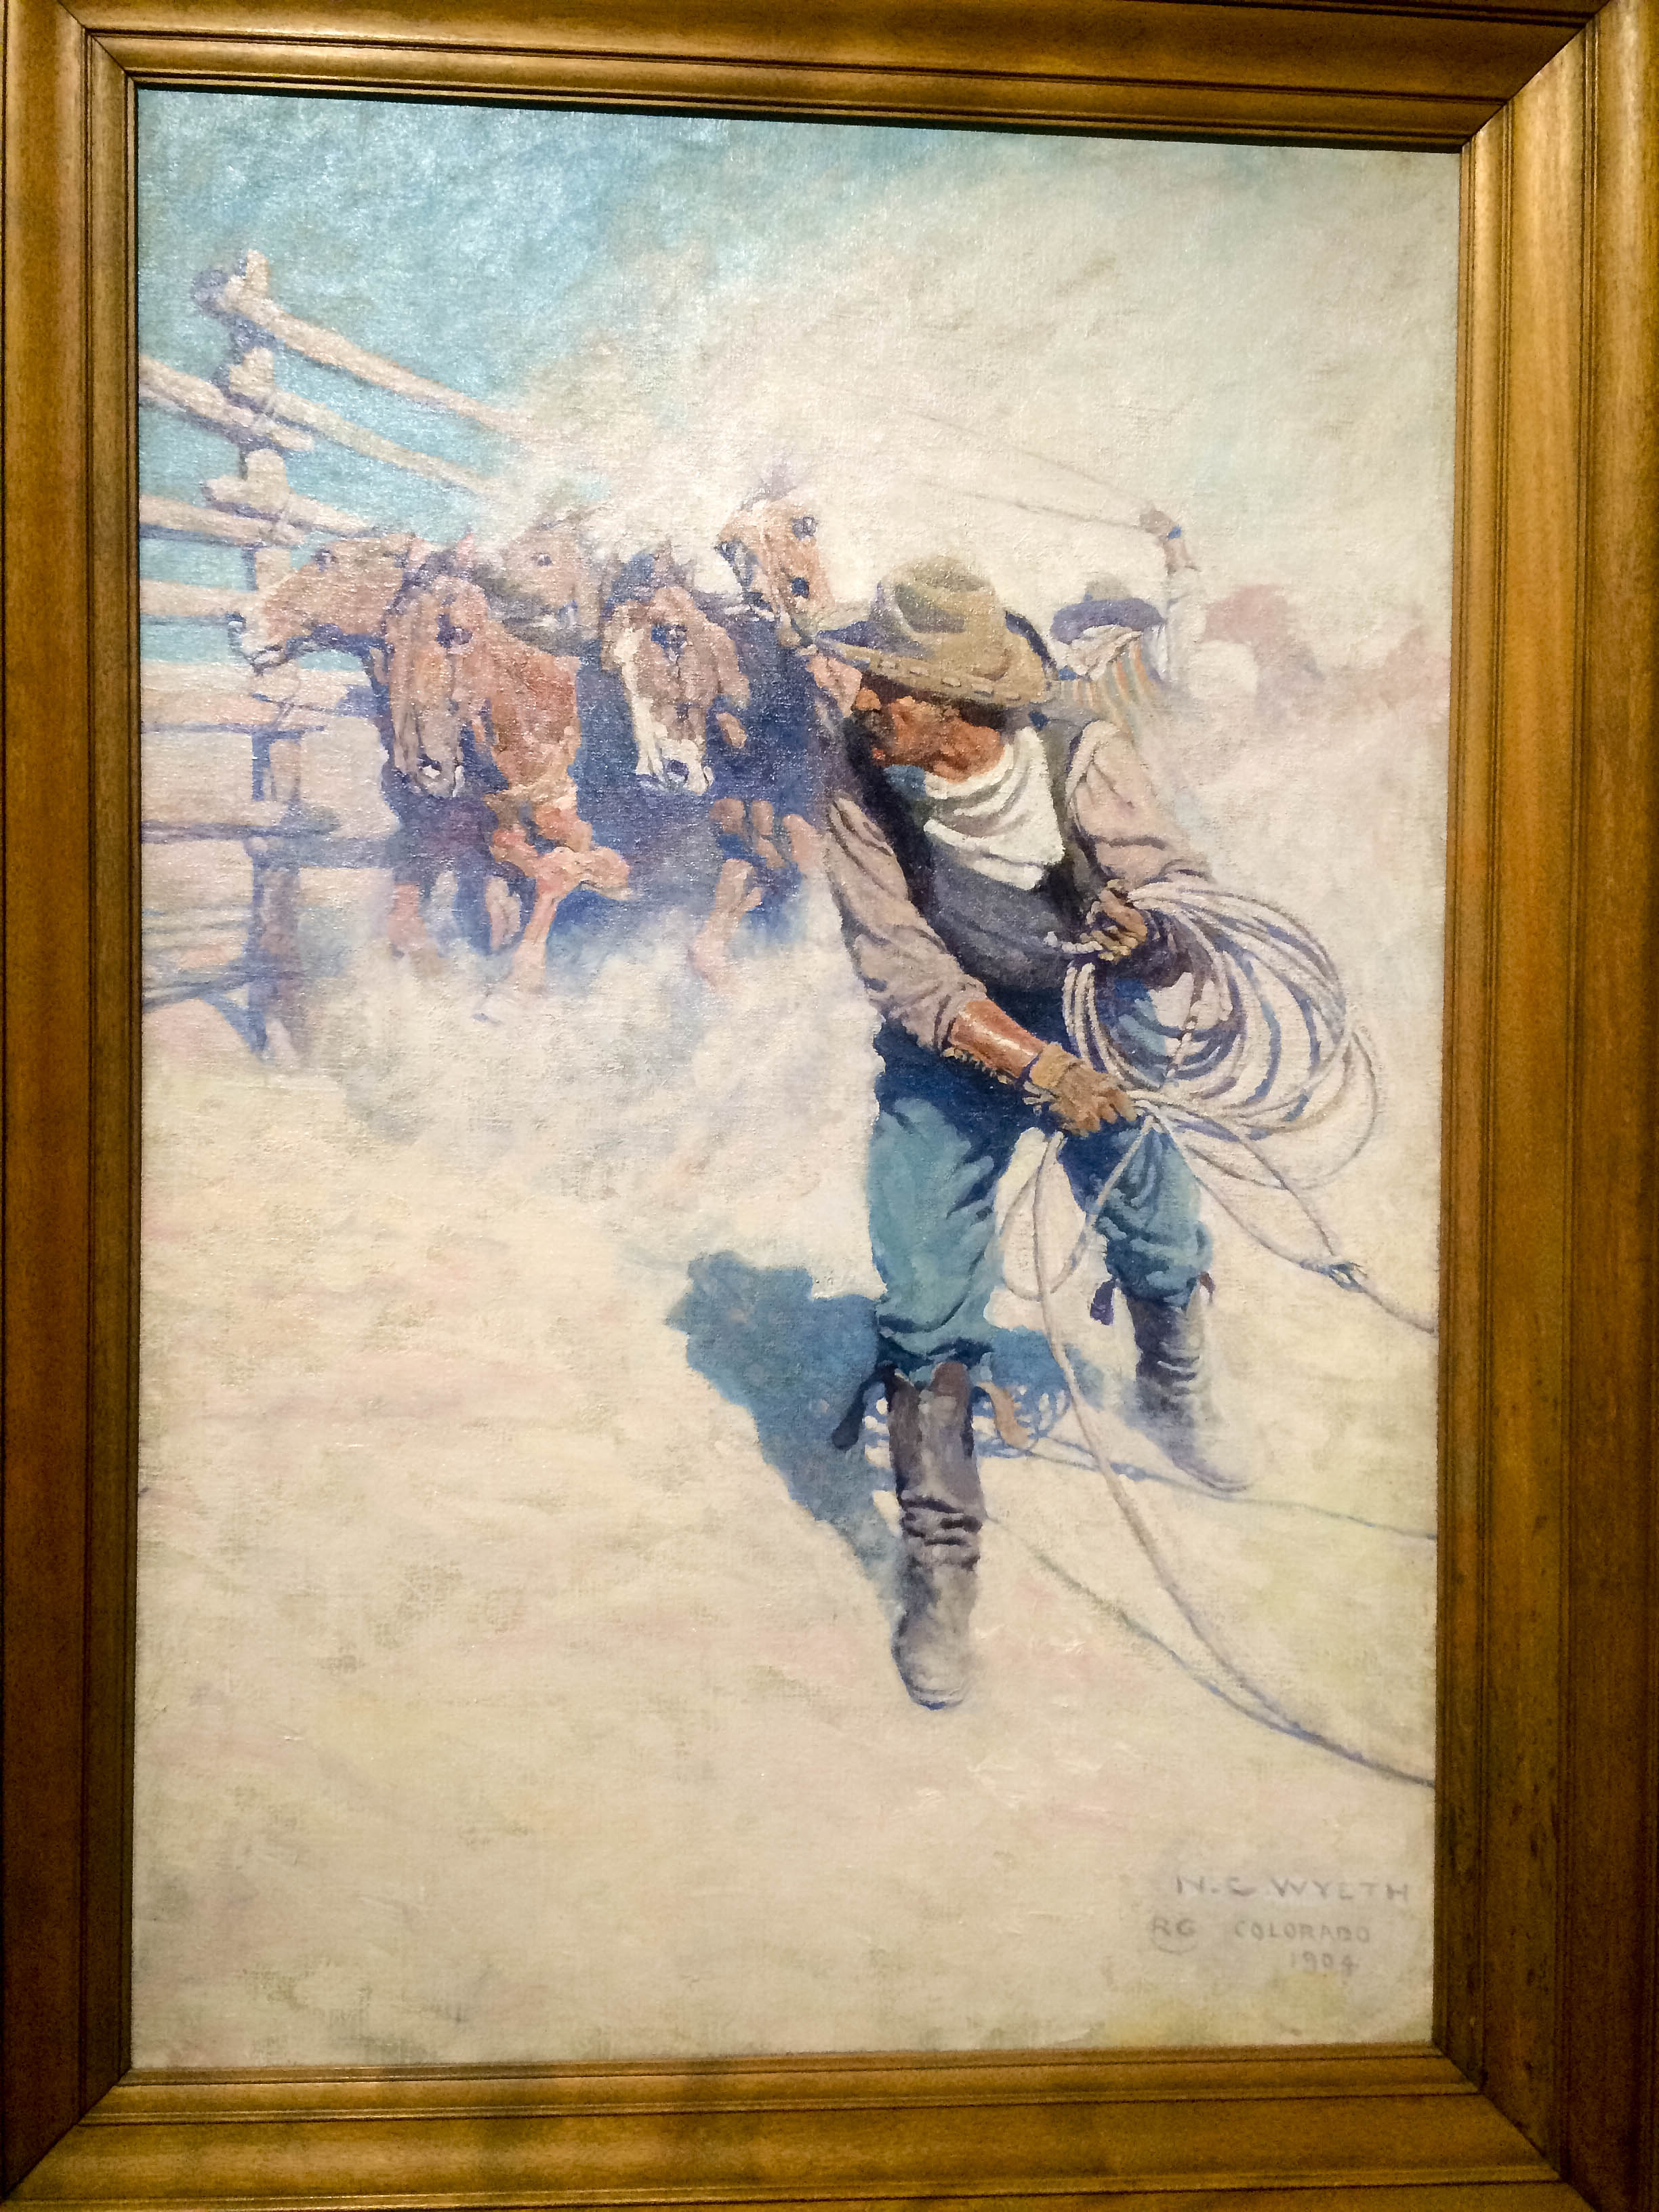 N.C Wyeth, part of the western art collection at the Cody Museum